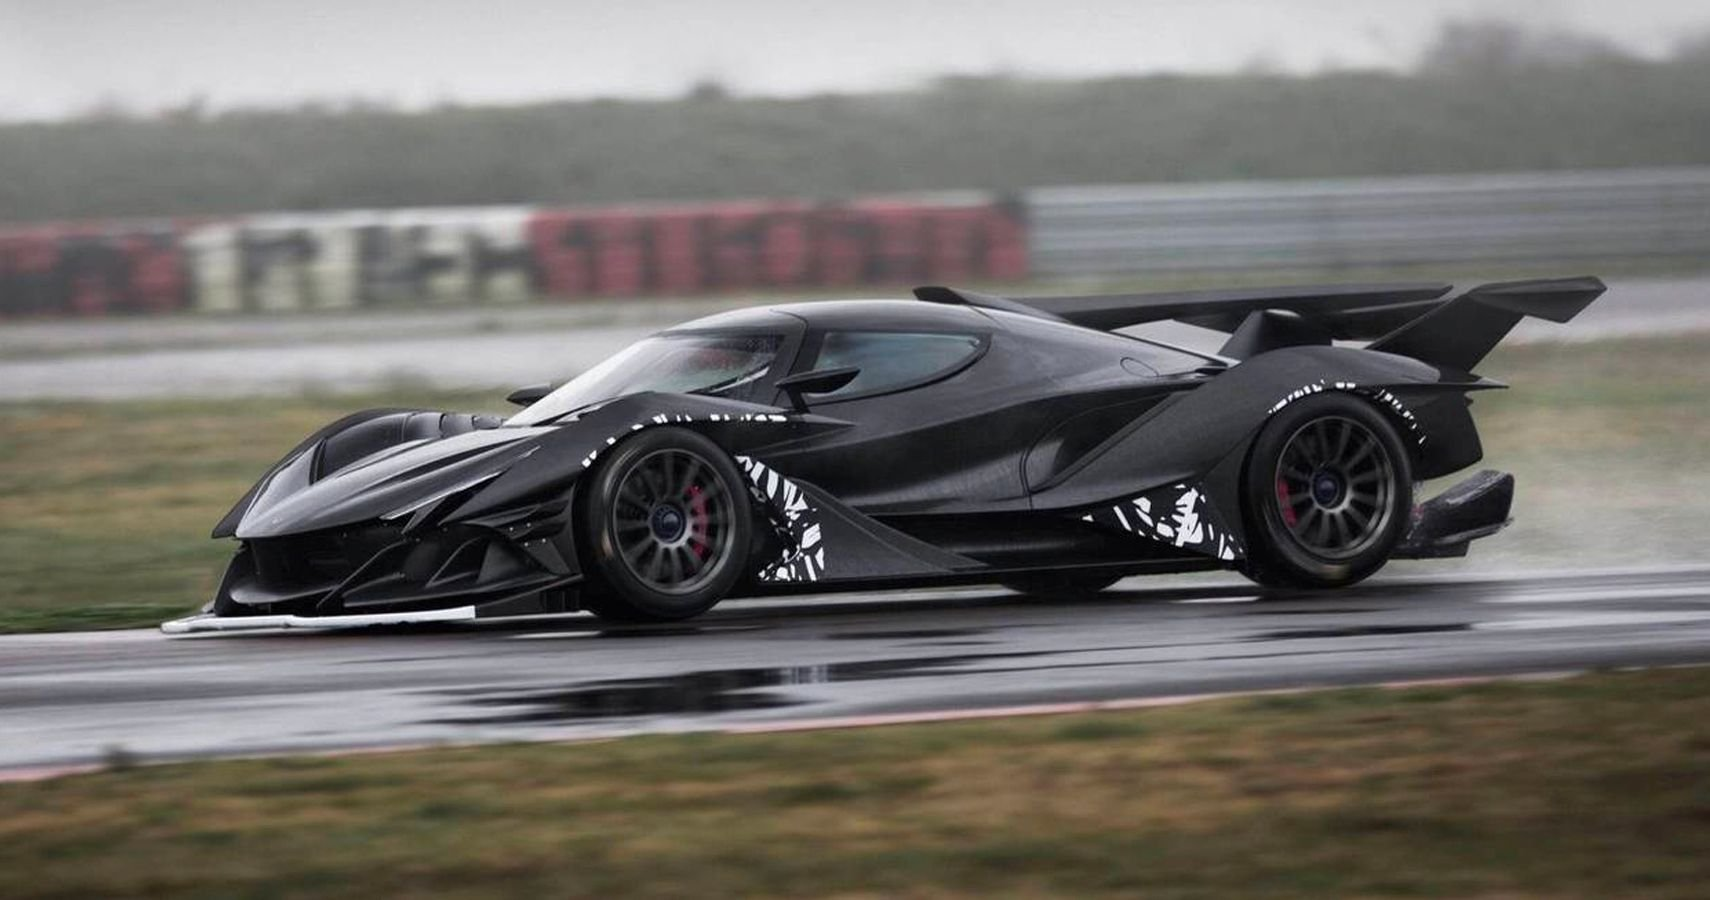 Apollo IE Hypercar Is Extremely Over The Top